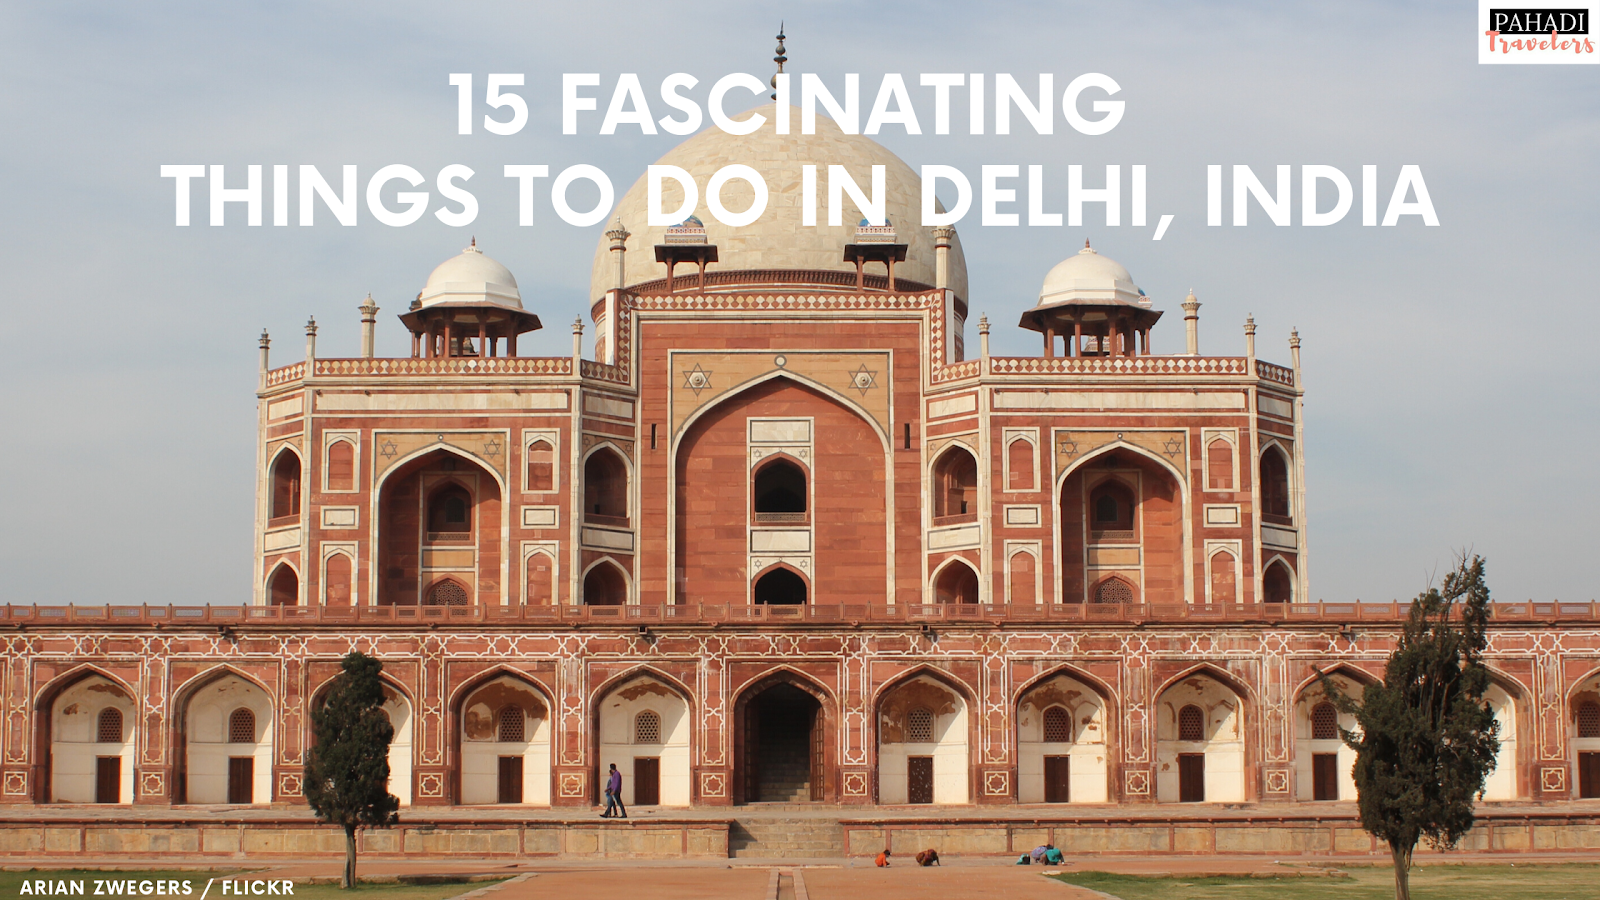 15 Fascinating Things To Do in Delhi, India | Pahadi Travelers